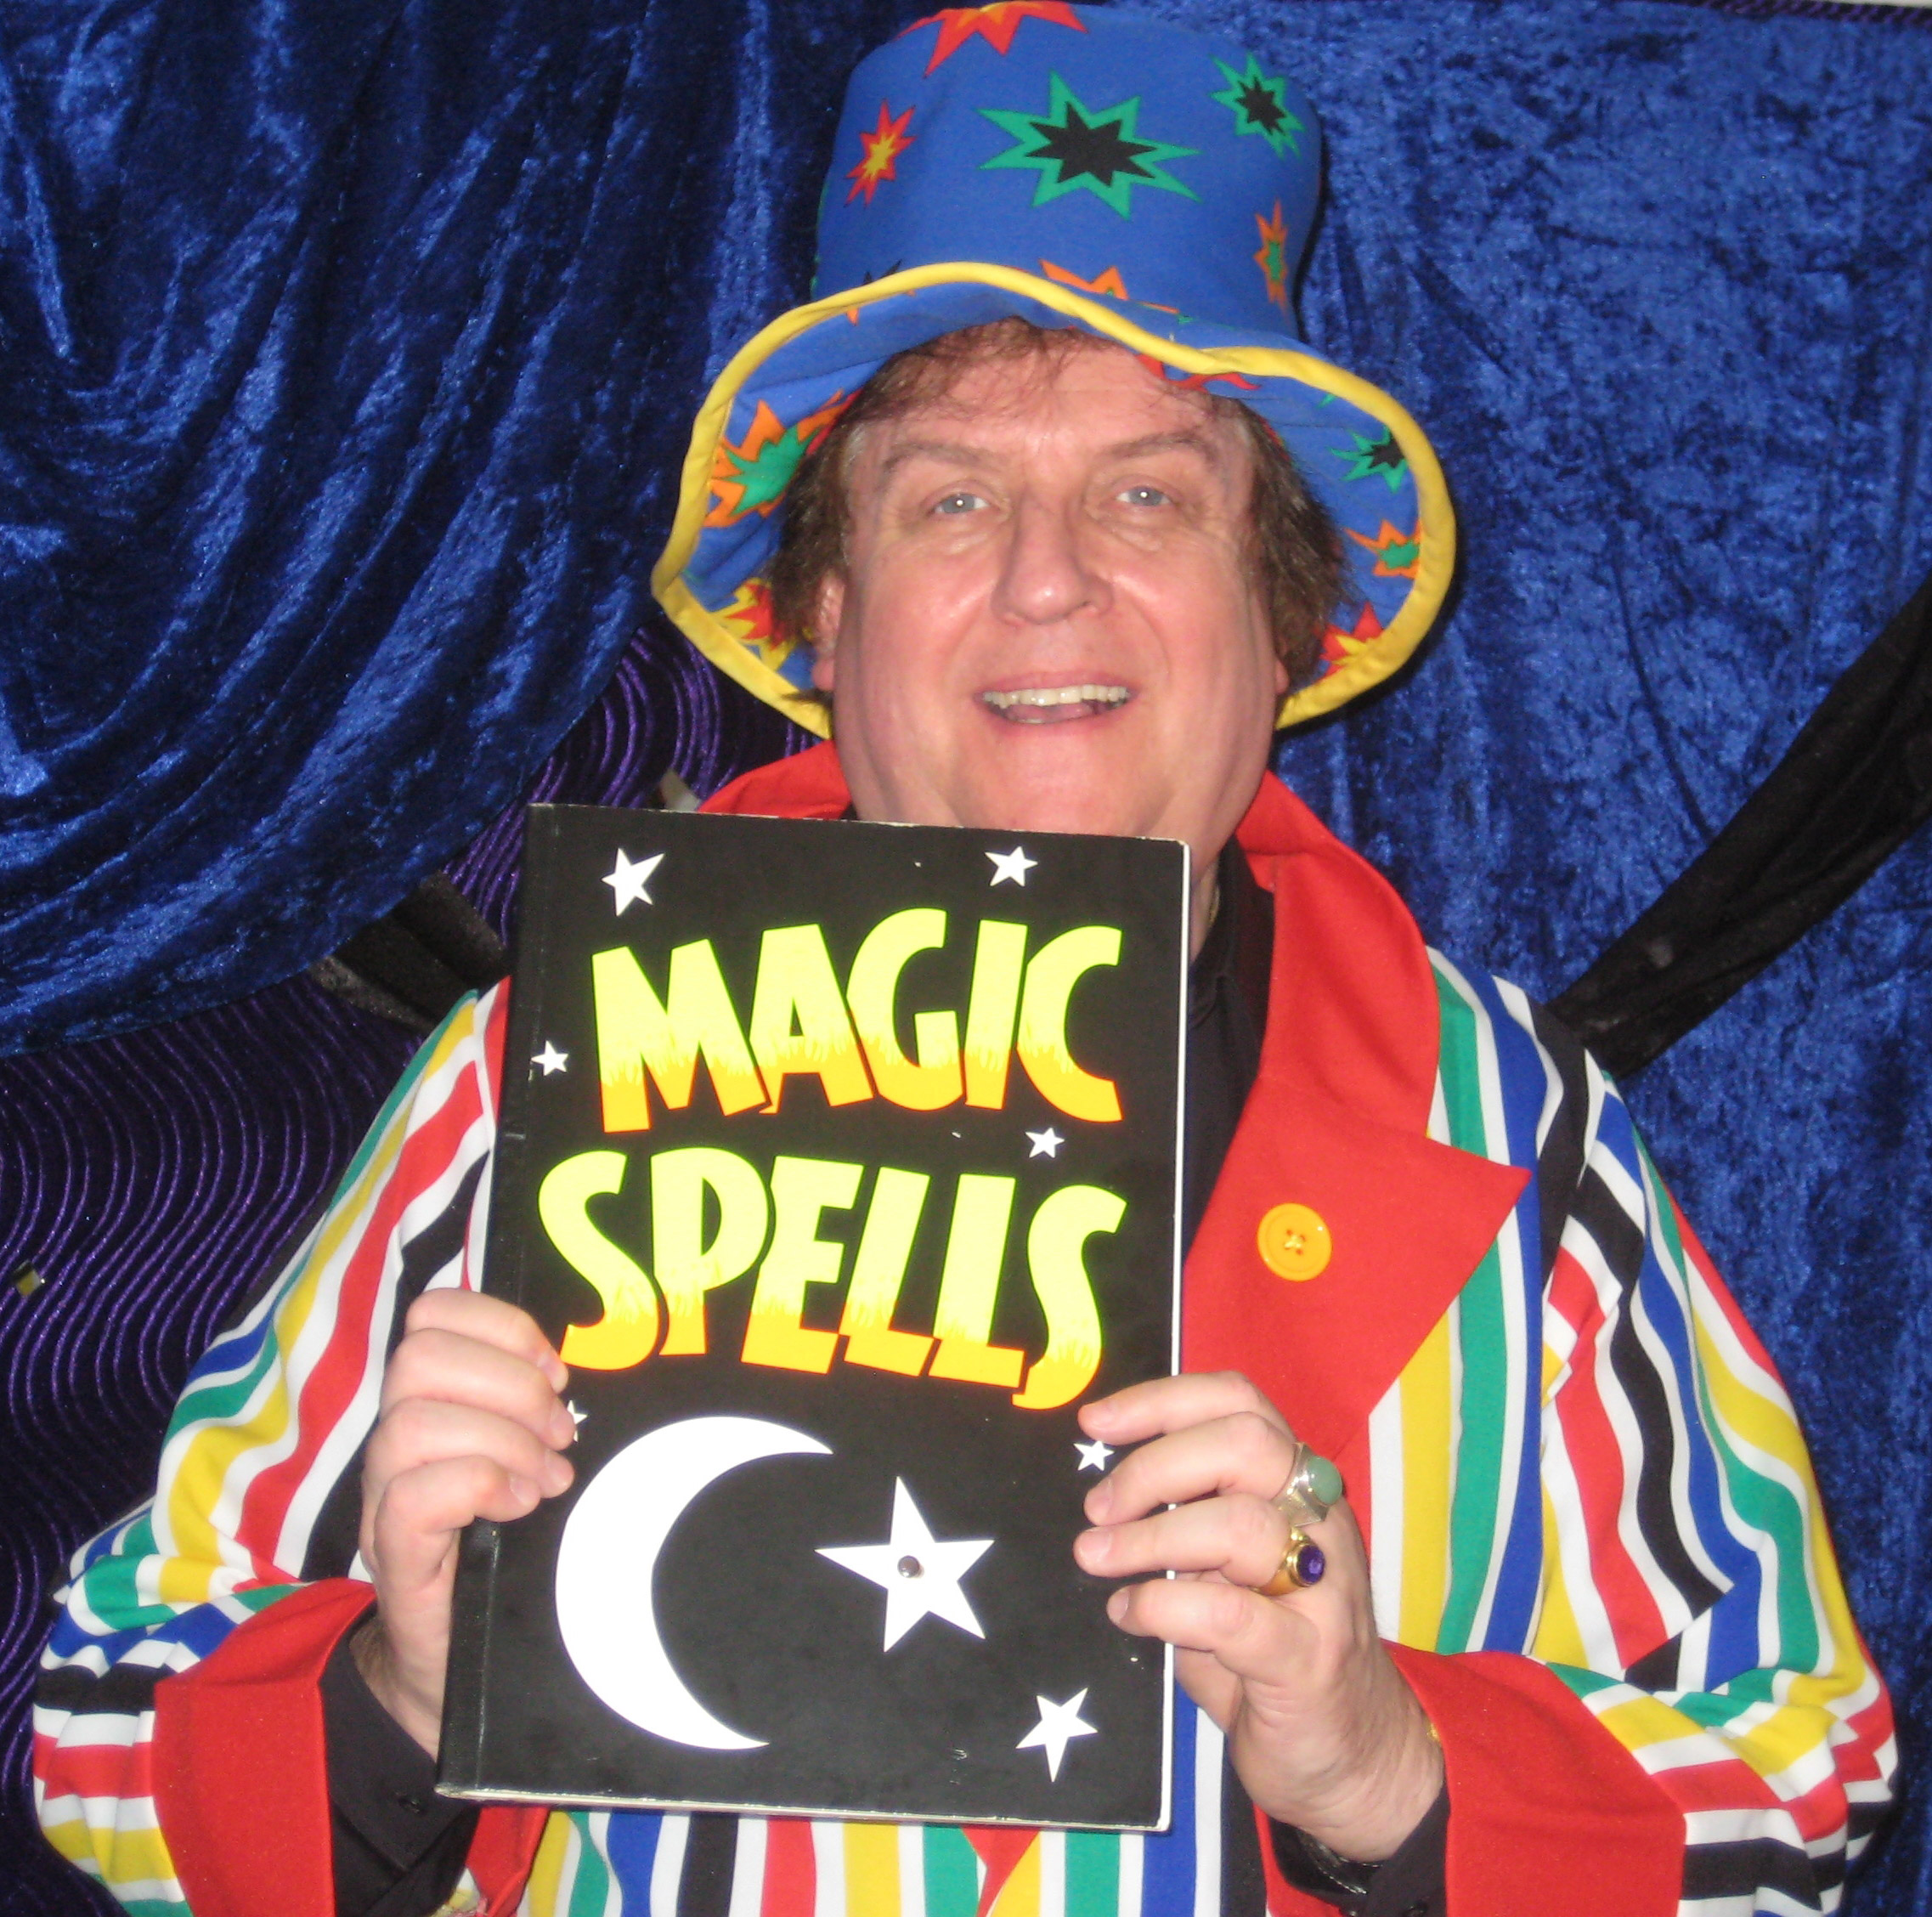 Magician in Hampshire - Nick Ralls